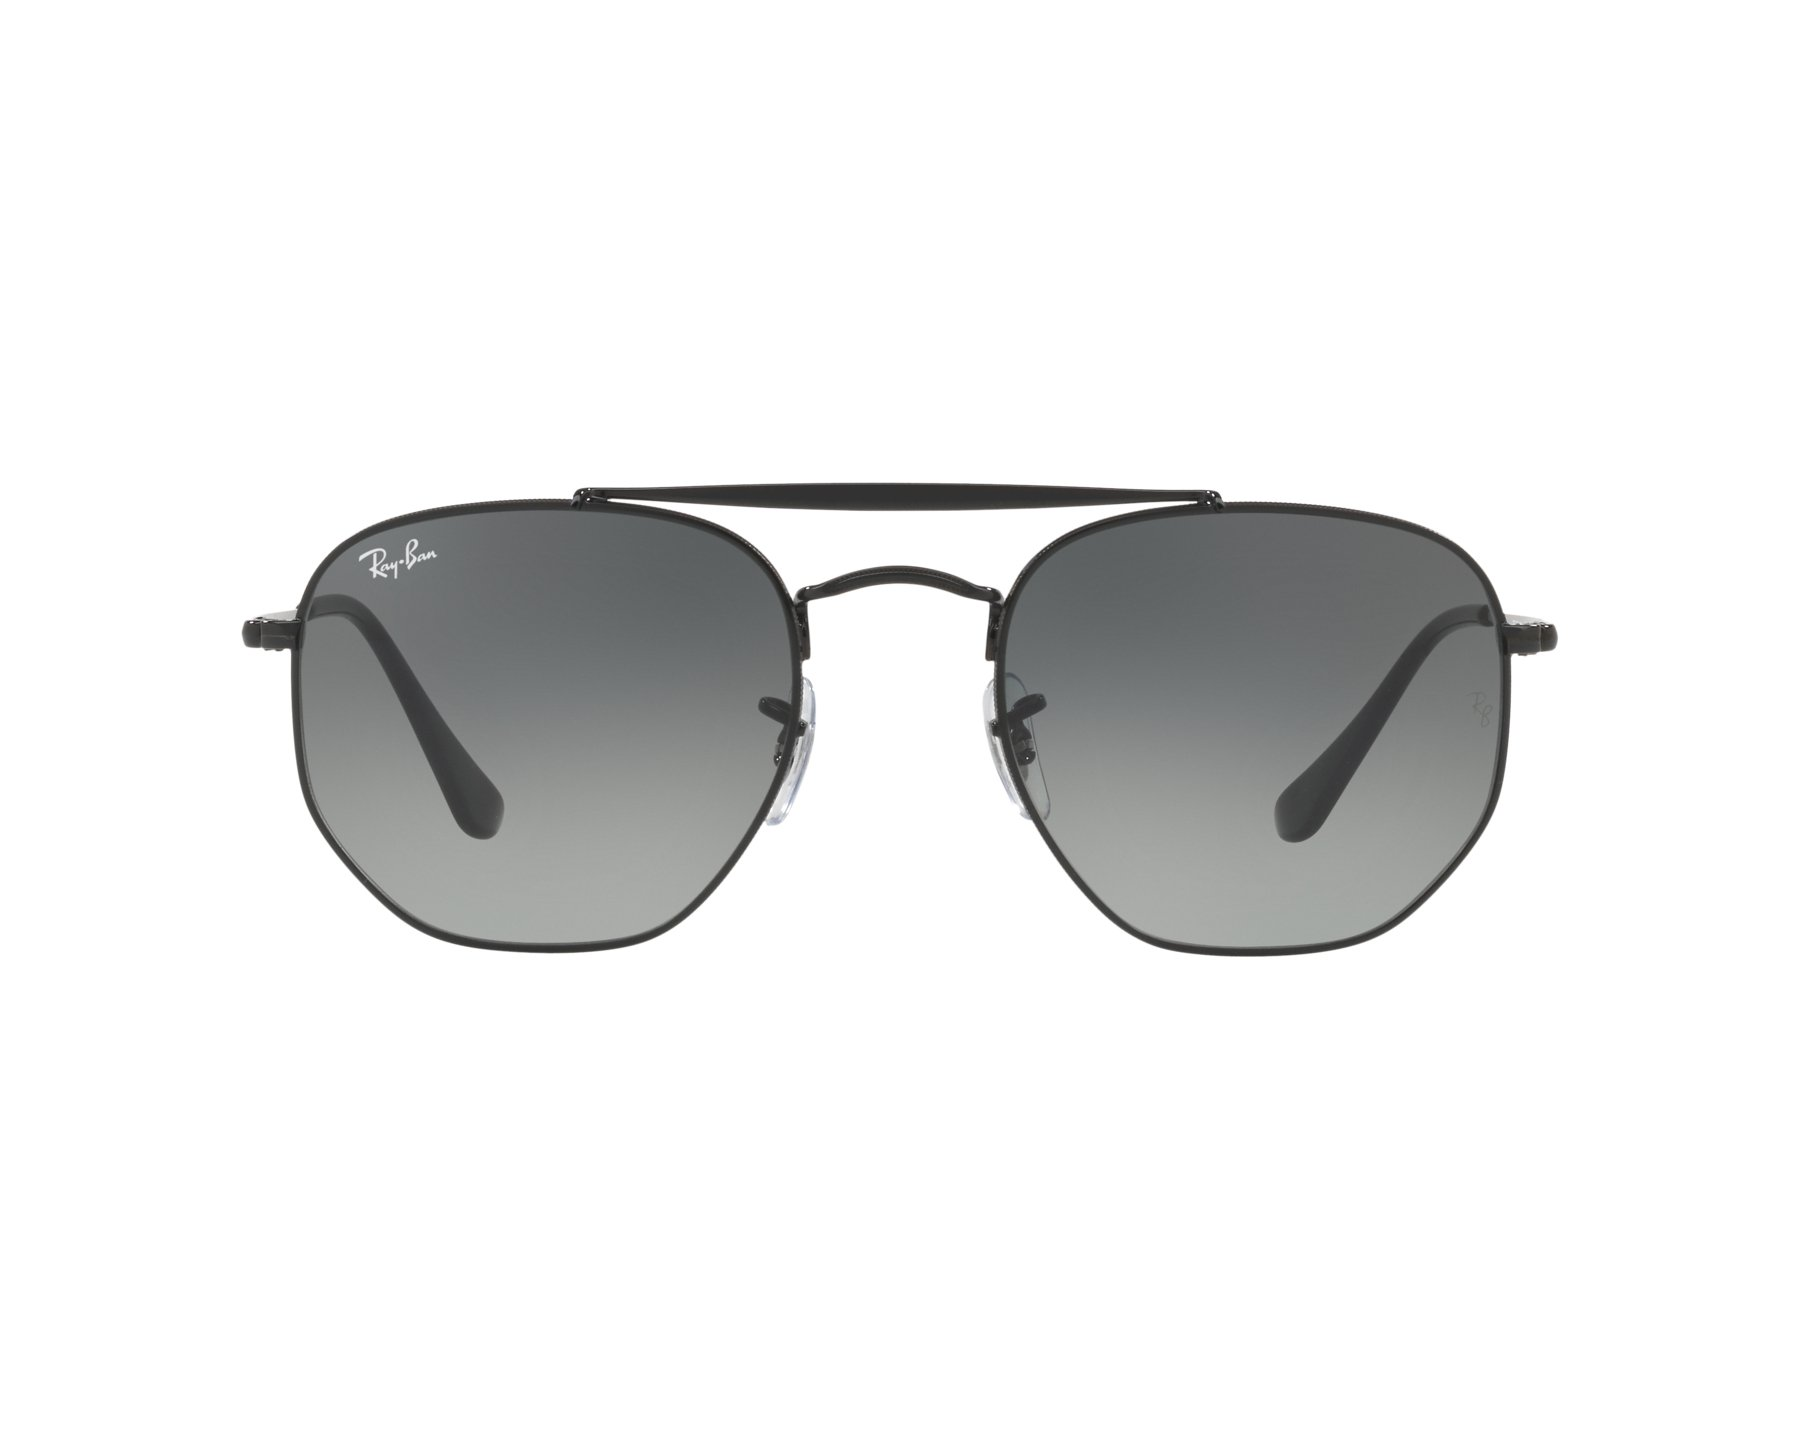 af96ac8e3b5e5 Buy Ray Ban Sunglasses RB 3648 002 71 Online Visionet UK